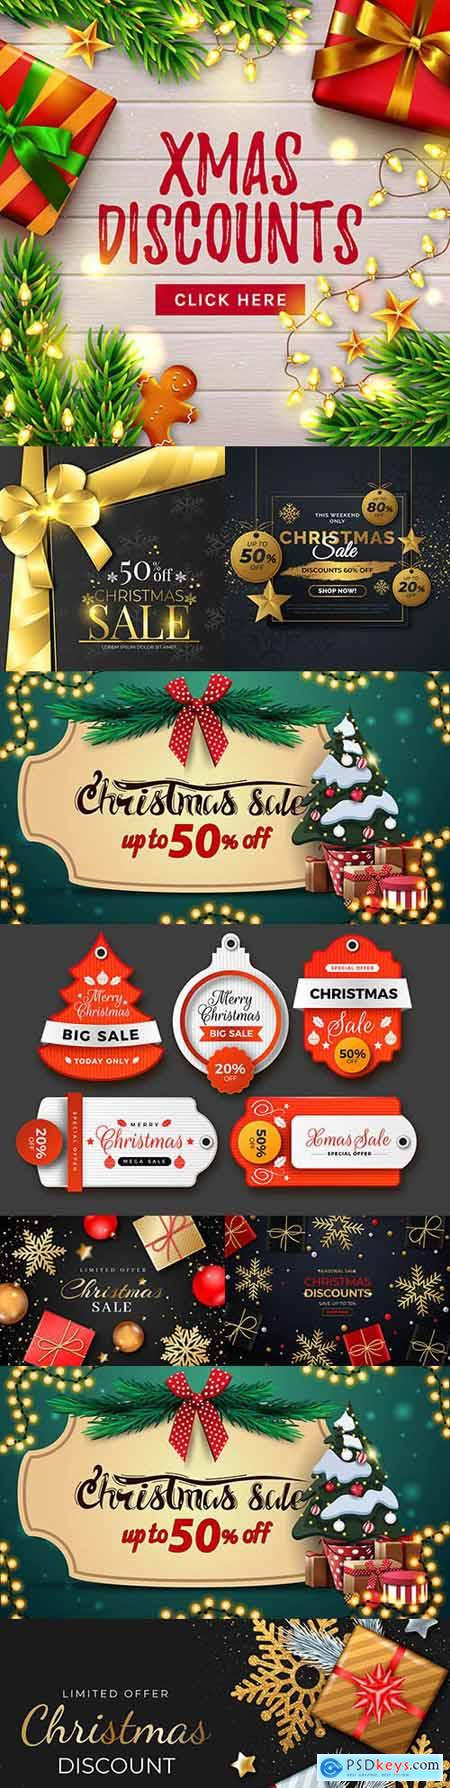 Realistic Christmas sale banner with gifts and snowflakes